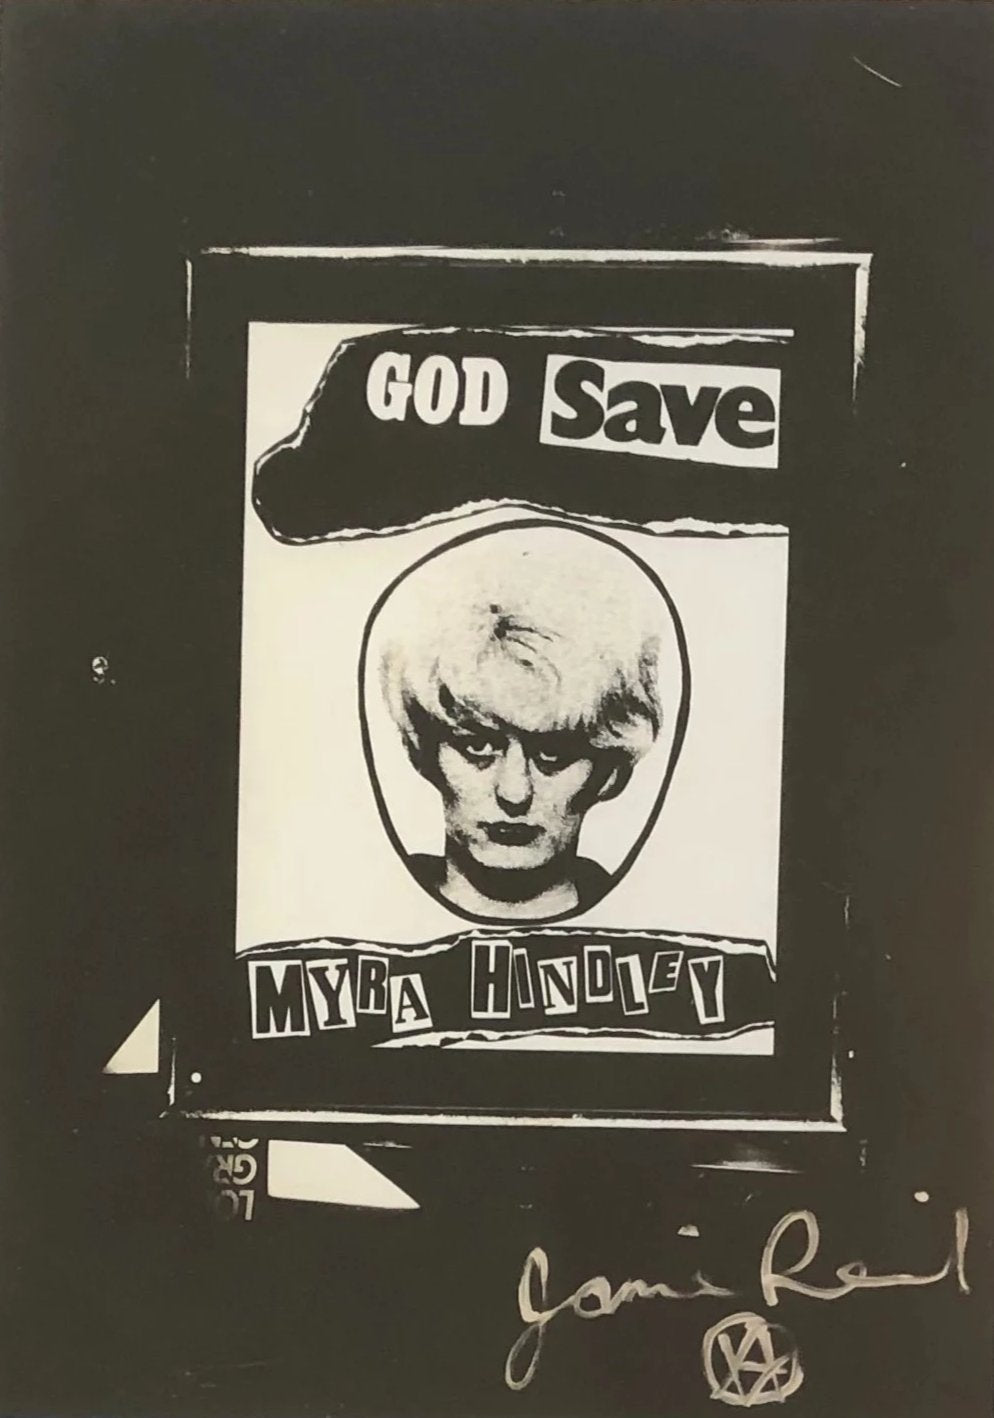 God Save Myra Hindley